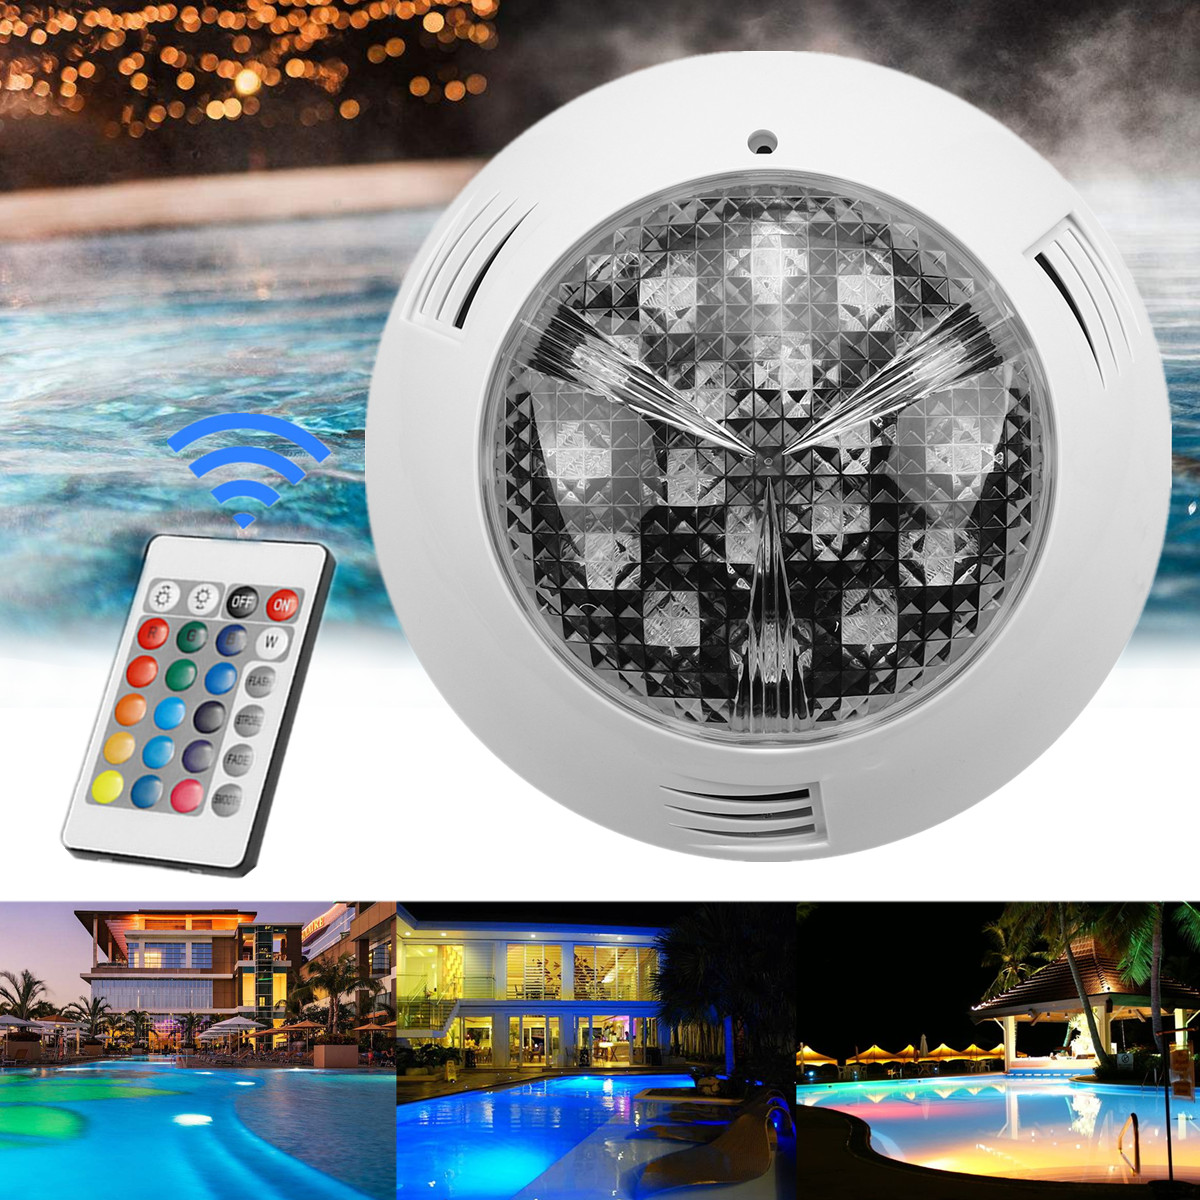 18W 24V LED RGB Colorful Swimming Pool Spa Light Underwater Lamp Remote Control Mounted Design Brightness 50000 Working Hours